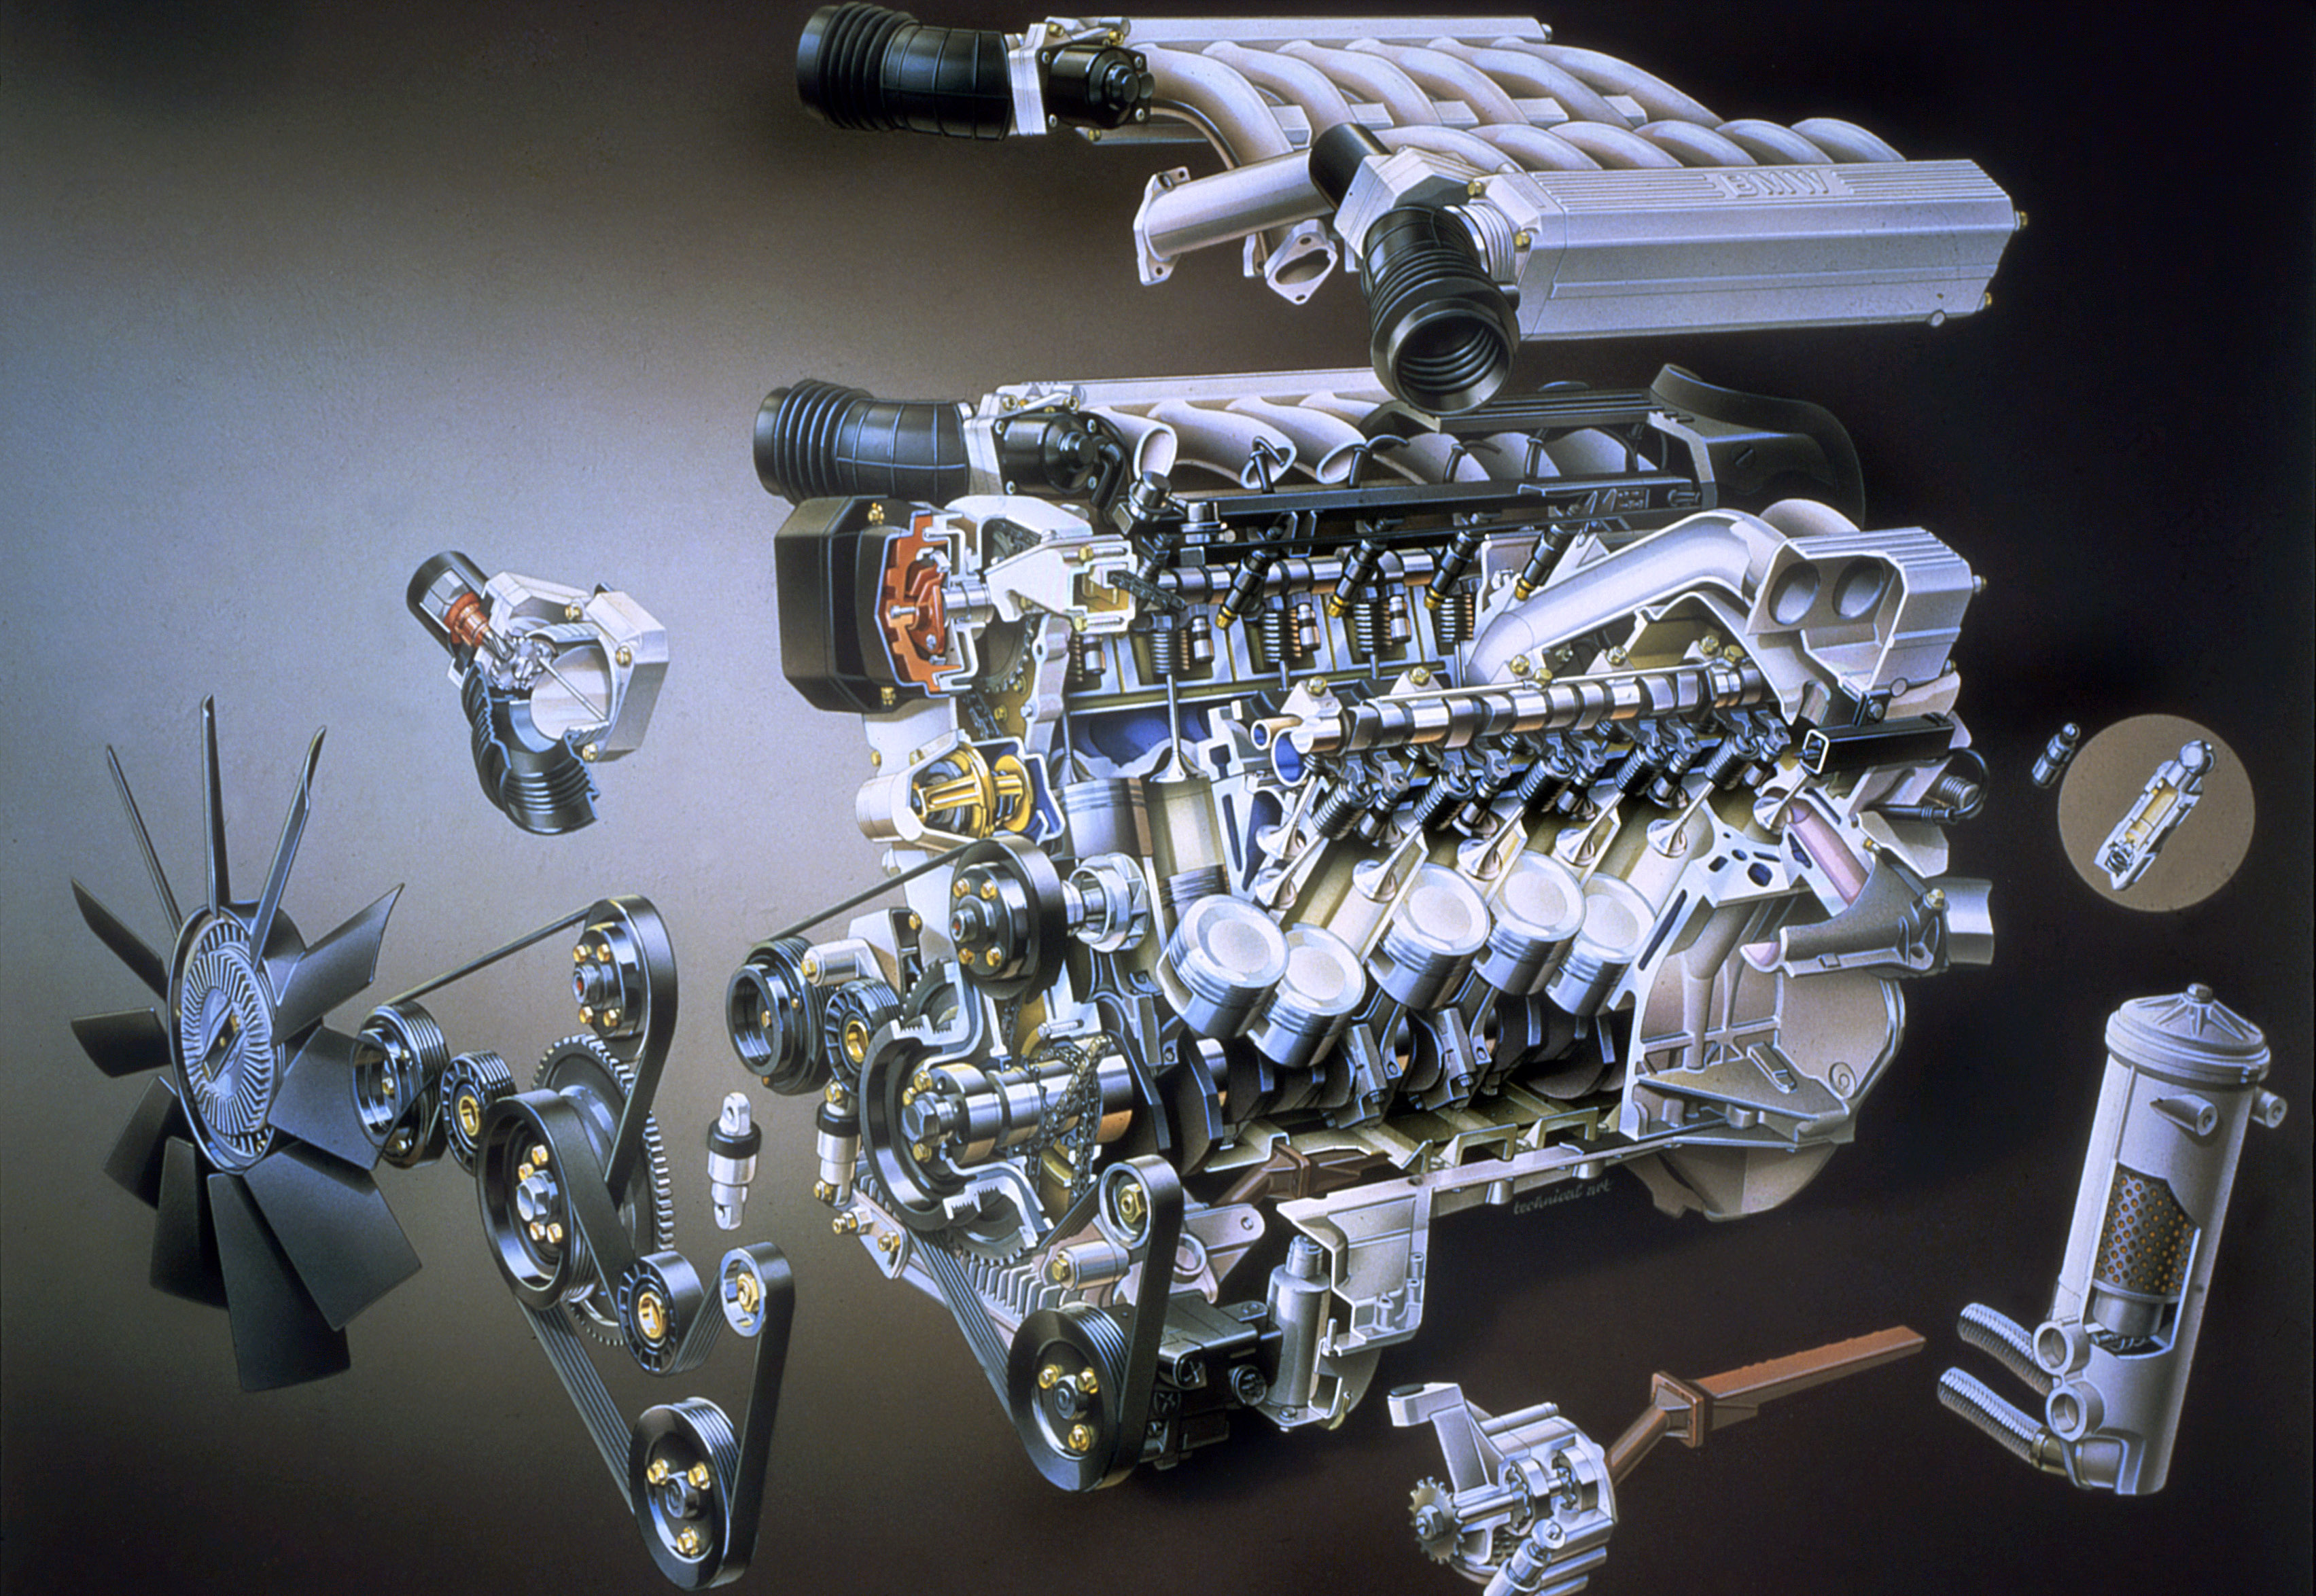 BMW M70 Engine